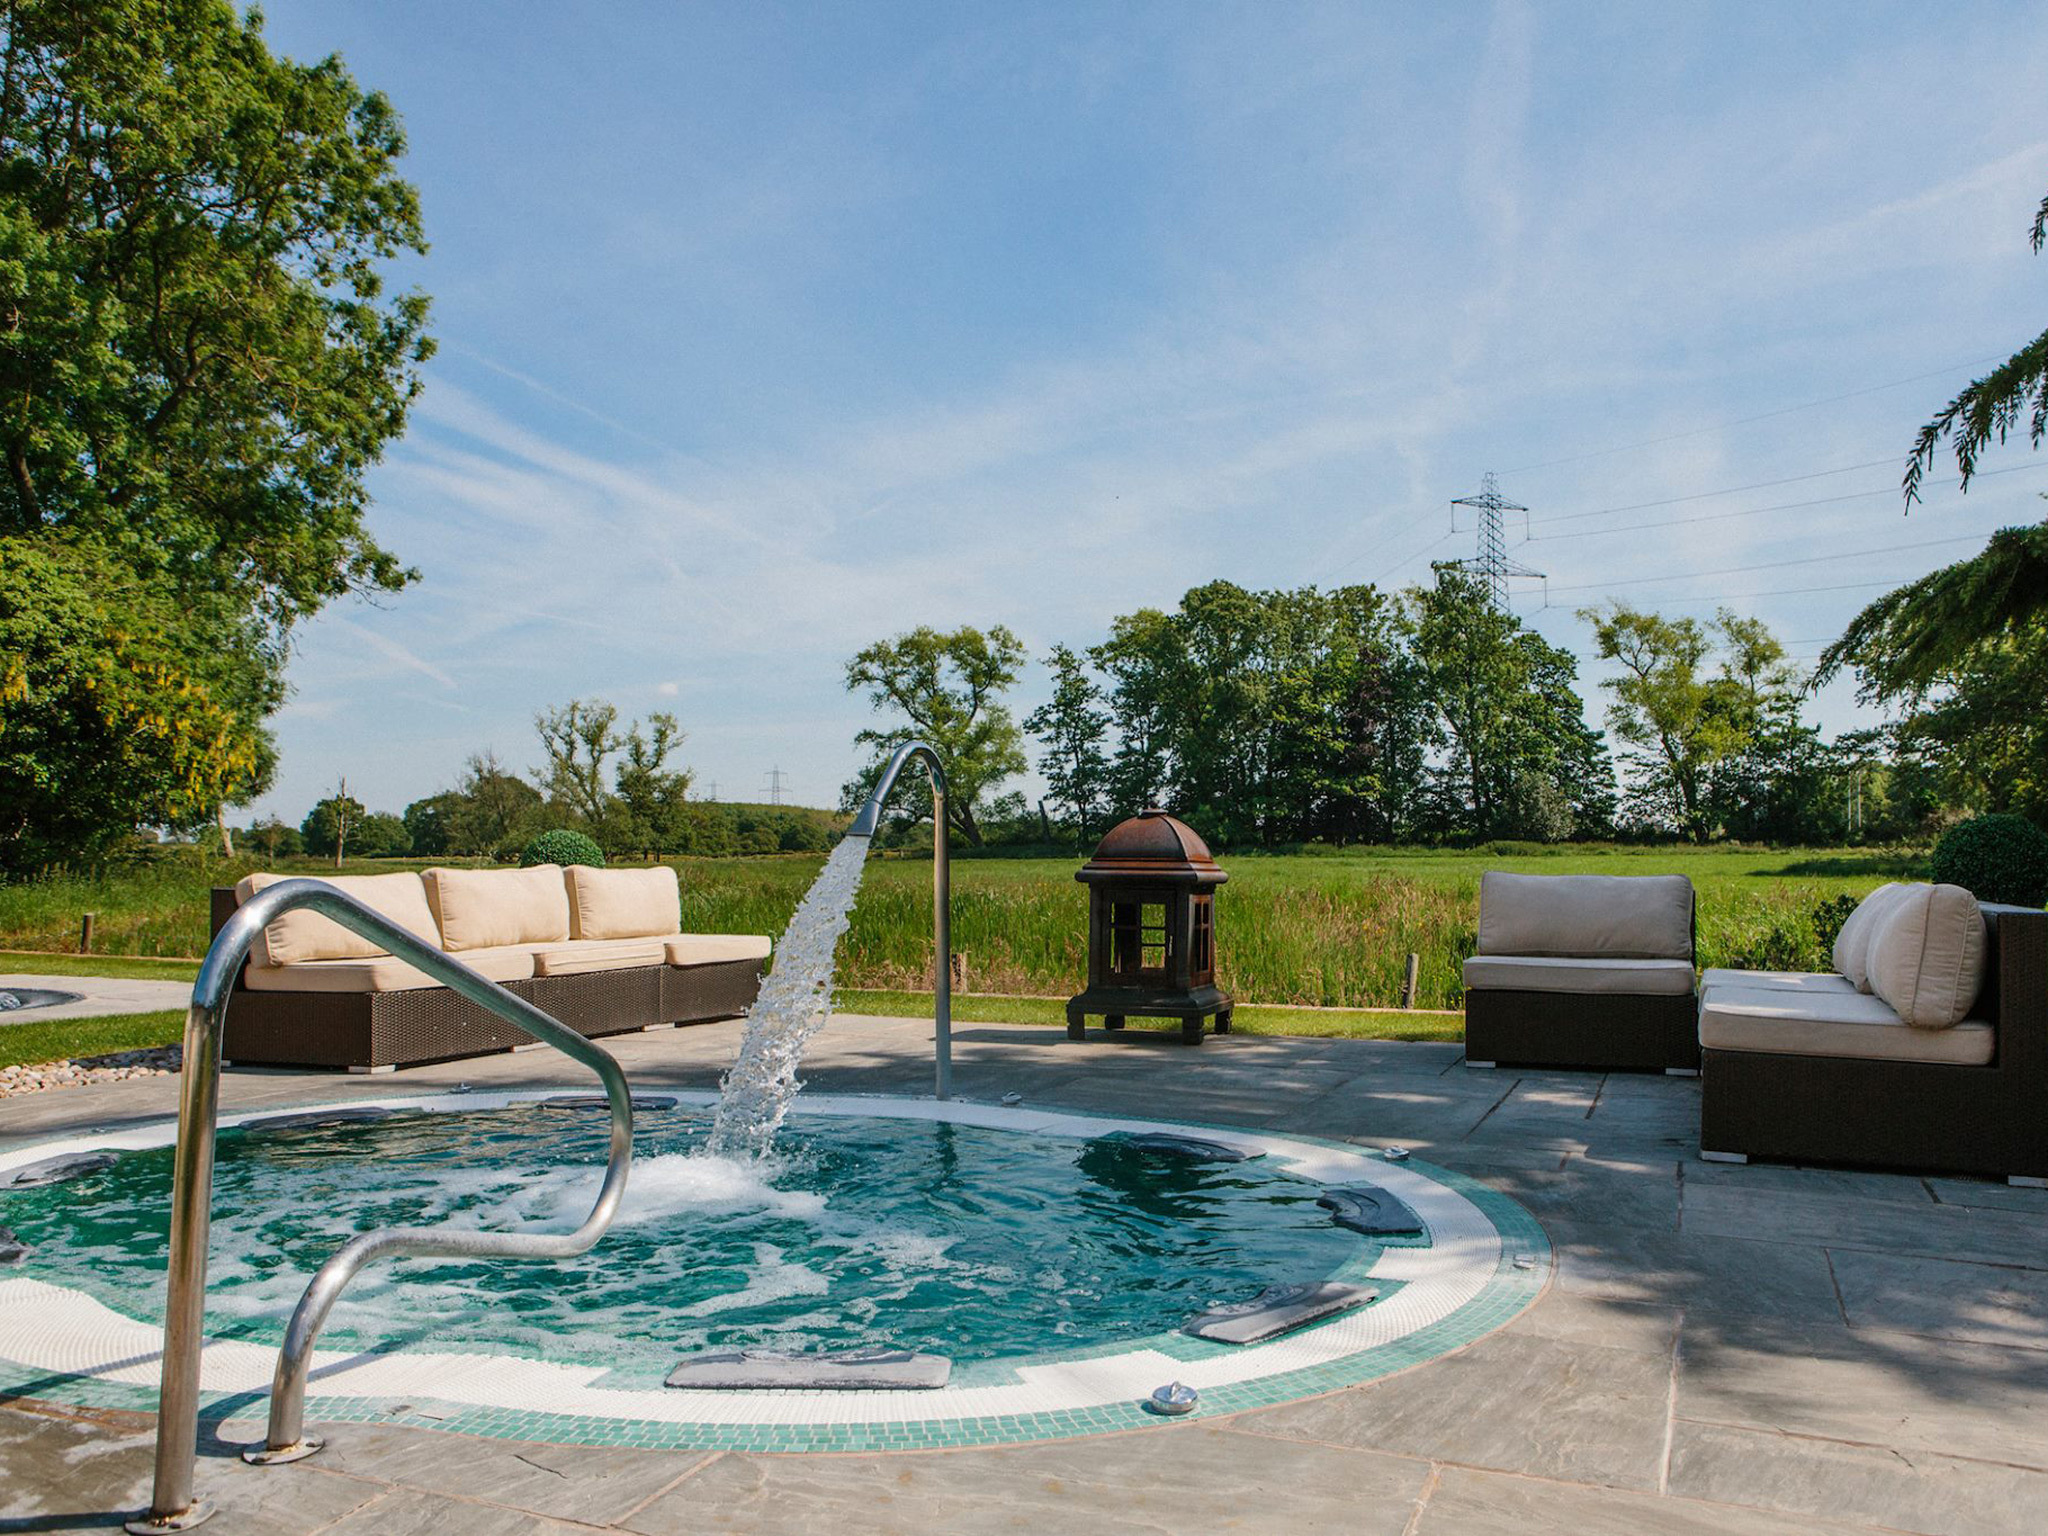 An outdoor hot tub at Thornton Hall near Liverpool